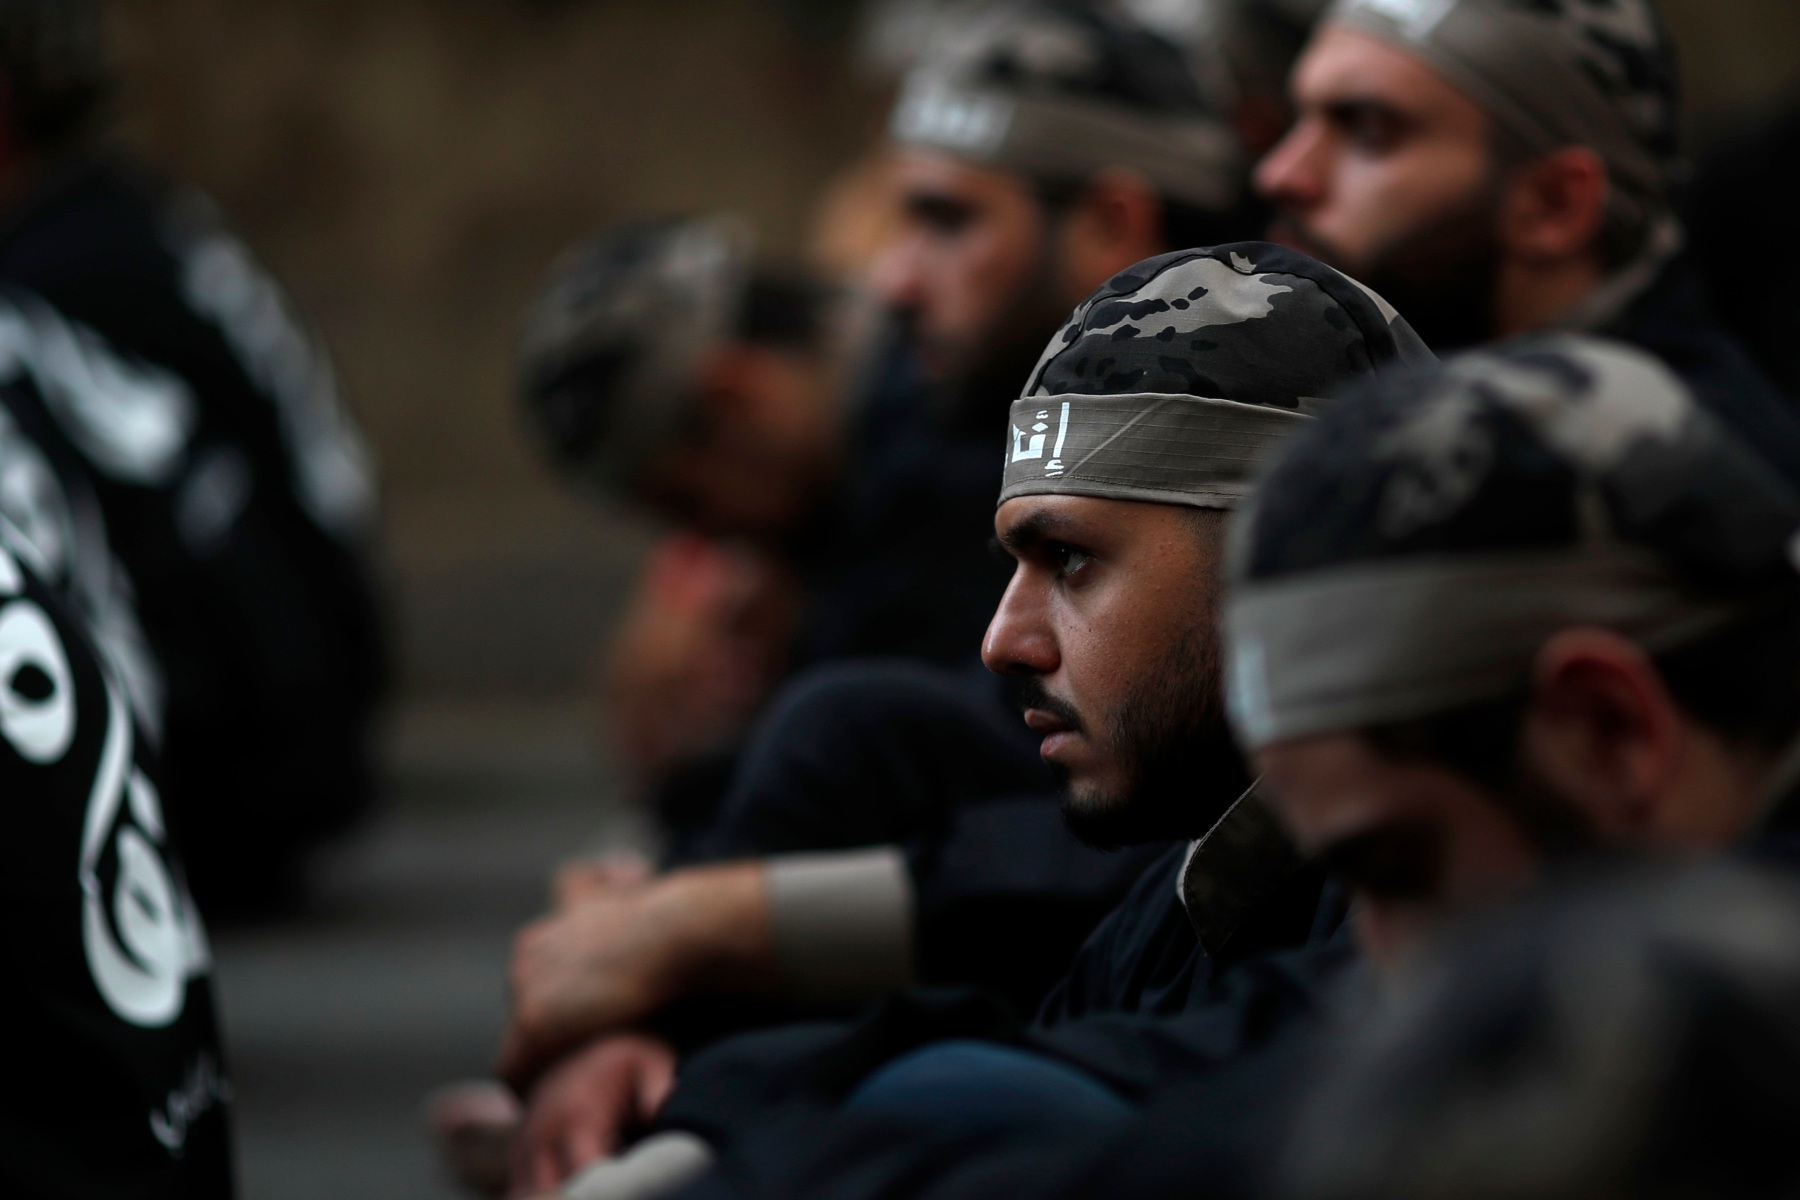 Lebanese Shiite supporters of Hezbollah listen to the story of Imam Hussein, during activities marking the holy day of Ashoura, in southern Beirut, Lebanon, Sunday, Oct. 1, 2017. Ashoura is the annual Shiite Muslim commemoration marking the death of Imam Hussein, the grandson of the Prophet Muhammad, at the Battle of Karbala in present-day Iraq in the 7th century. (AP Photo/Hassan Ammar)